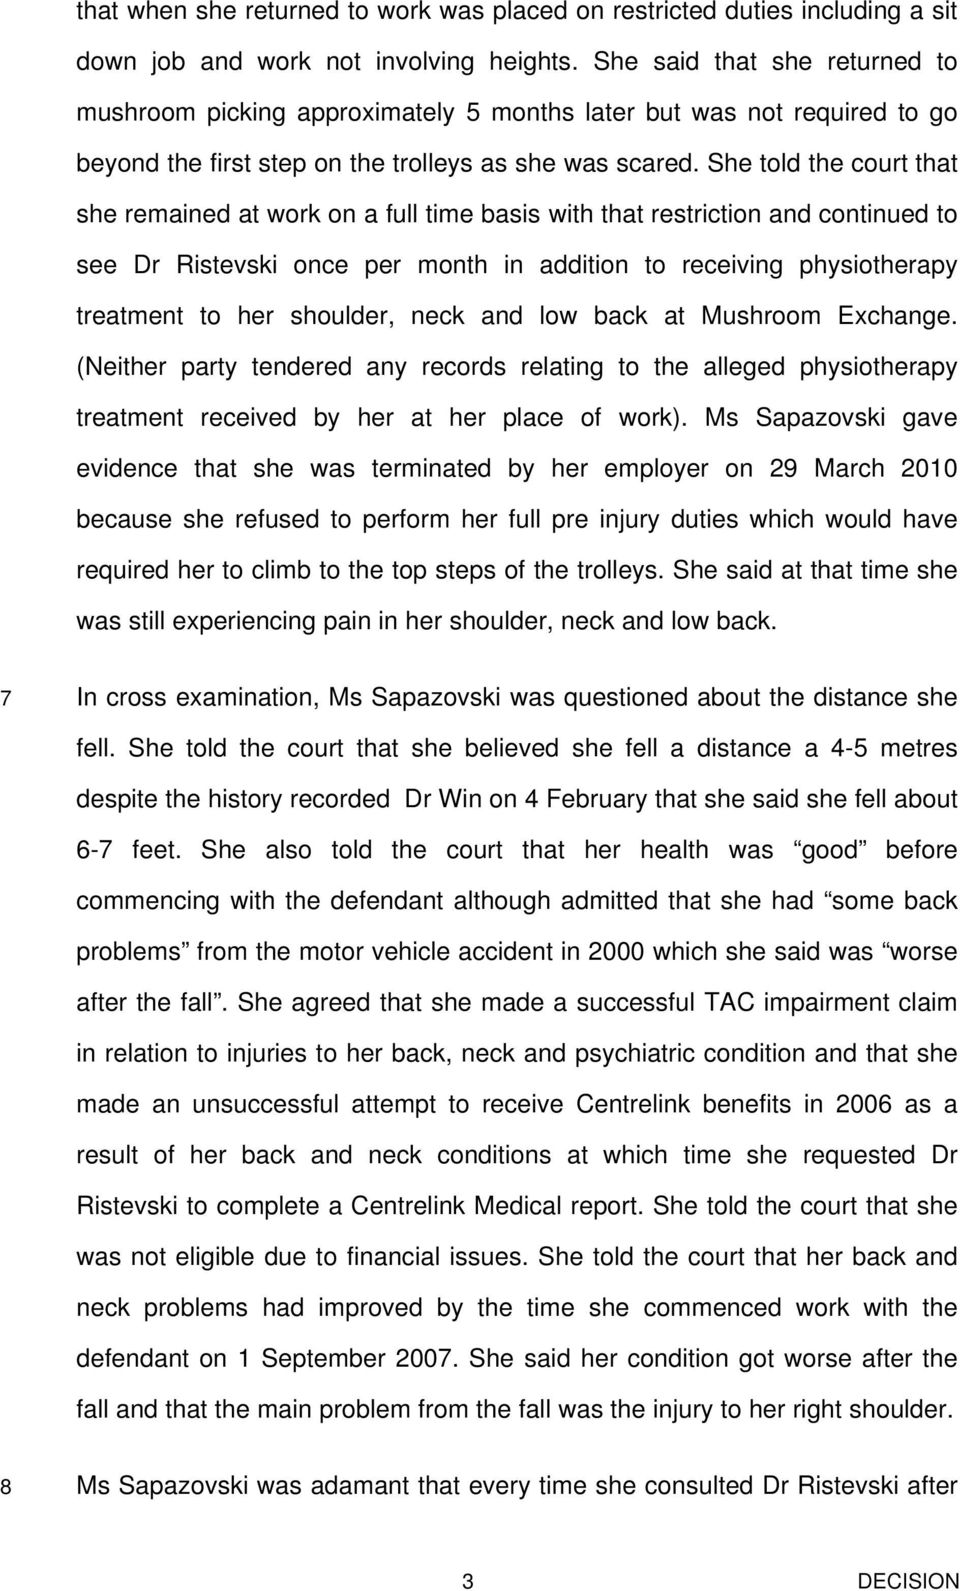 She told the court that she remained at work on a full time basis with that restriction and continued to see Dr Ristevski once per month in addition to receiving physiotherapy treatment to her